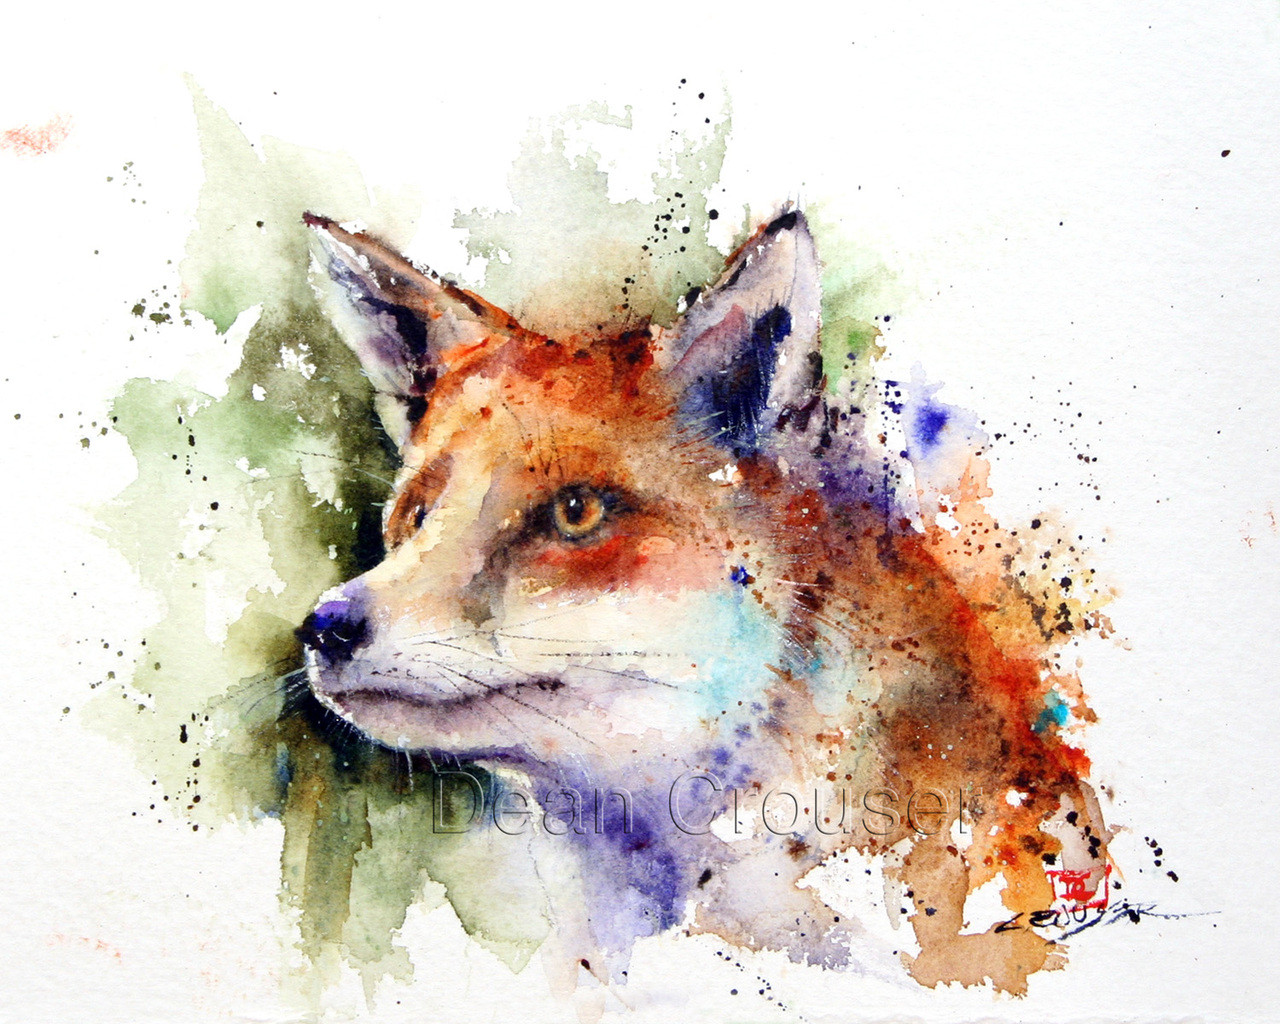 Red Fox The Art Of Dean Crouser